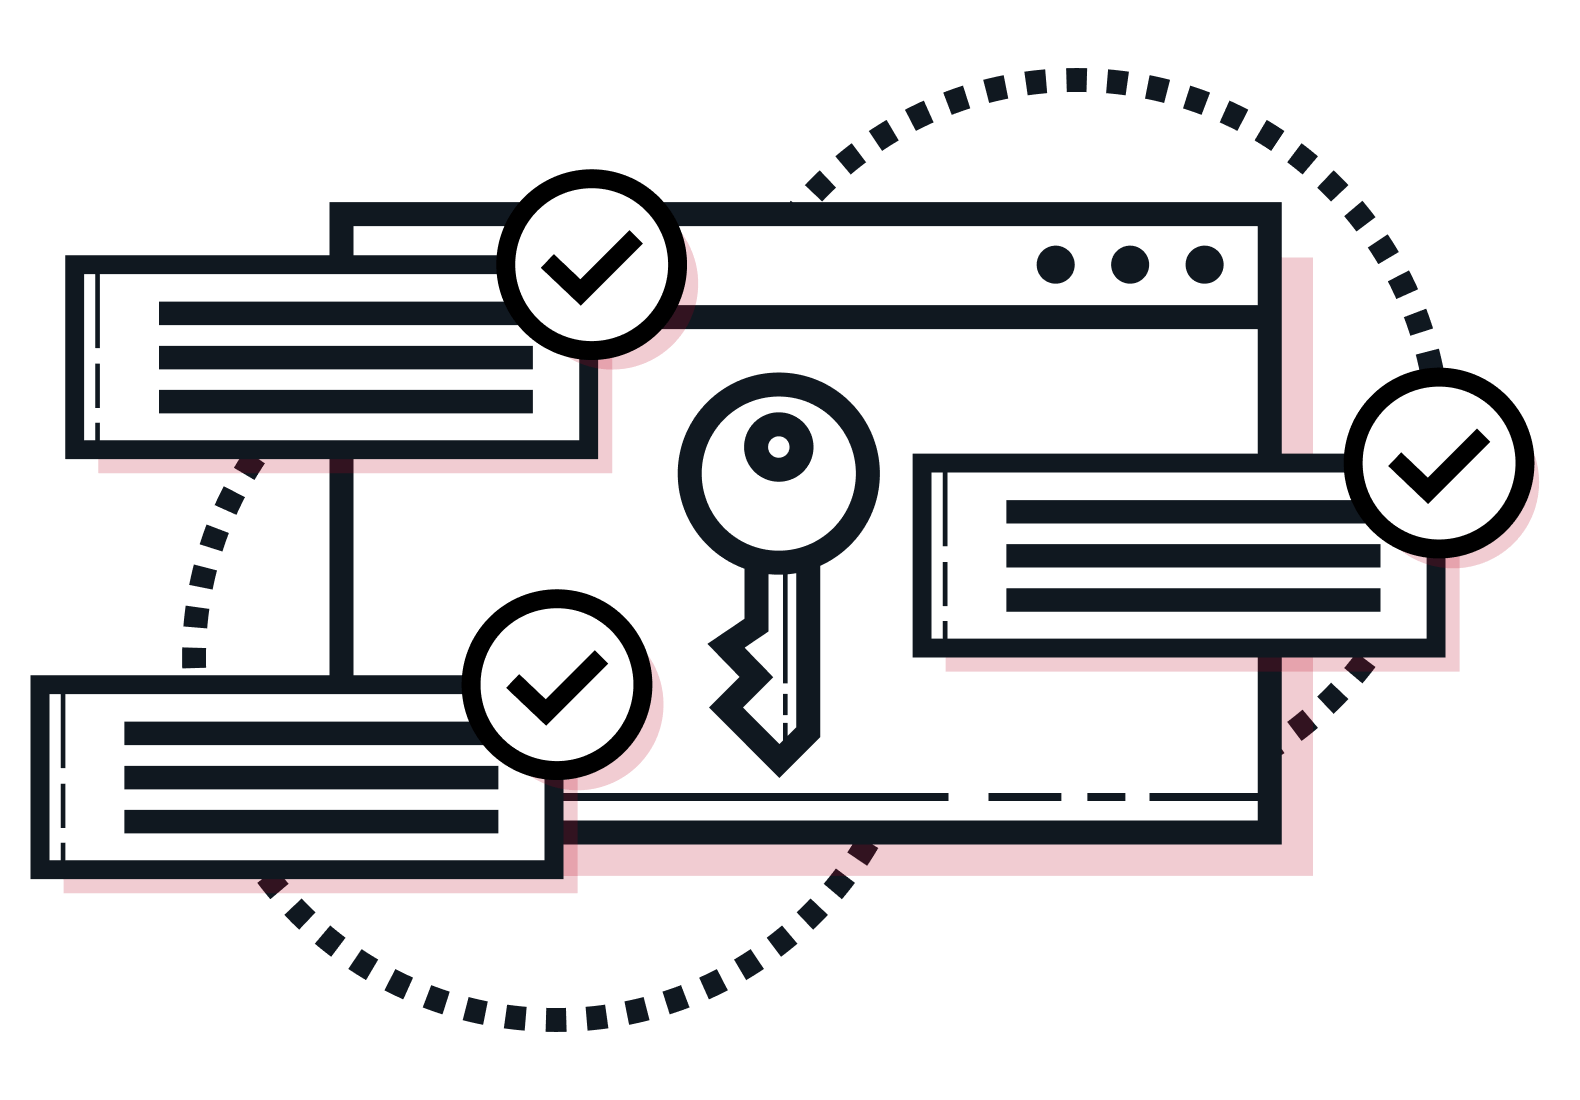 WARROOM can track all messages with your customized keywords so that you can take care of your customers without delay.